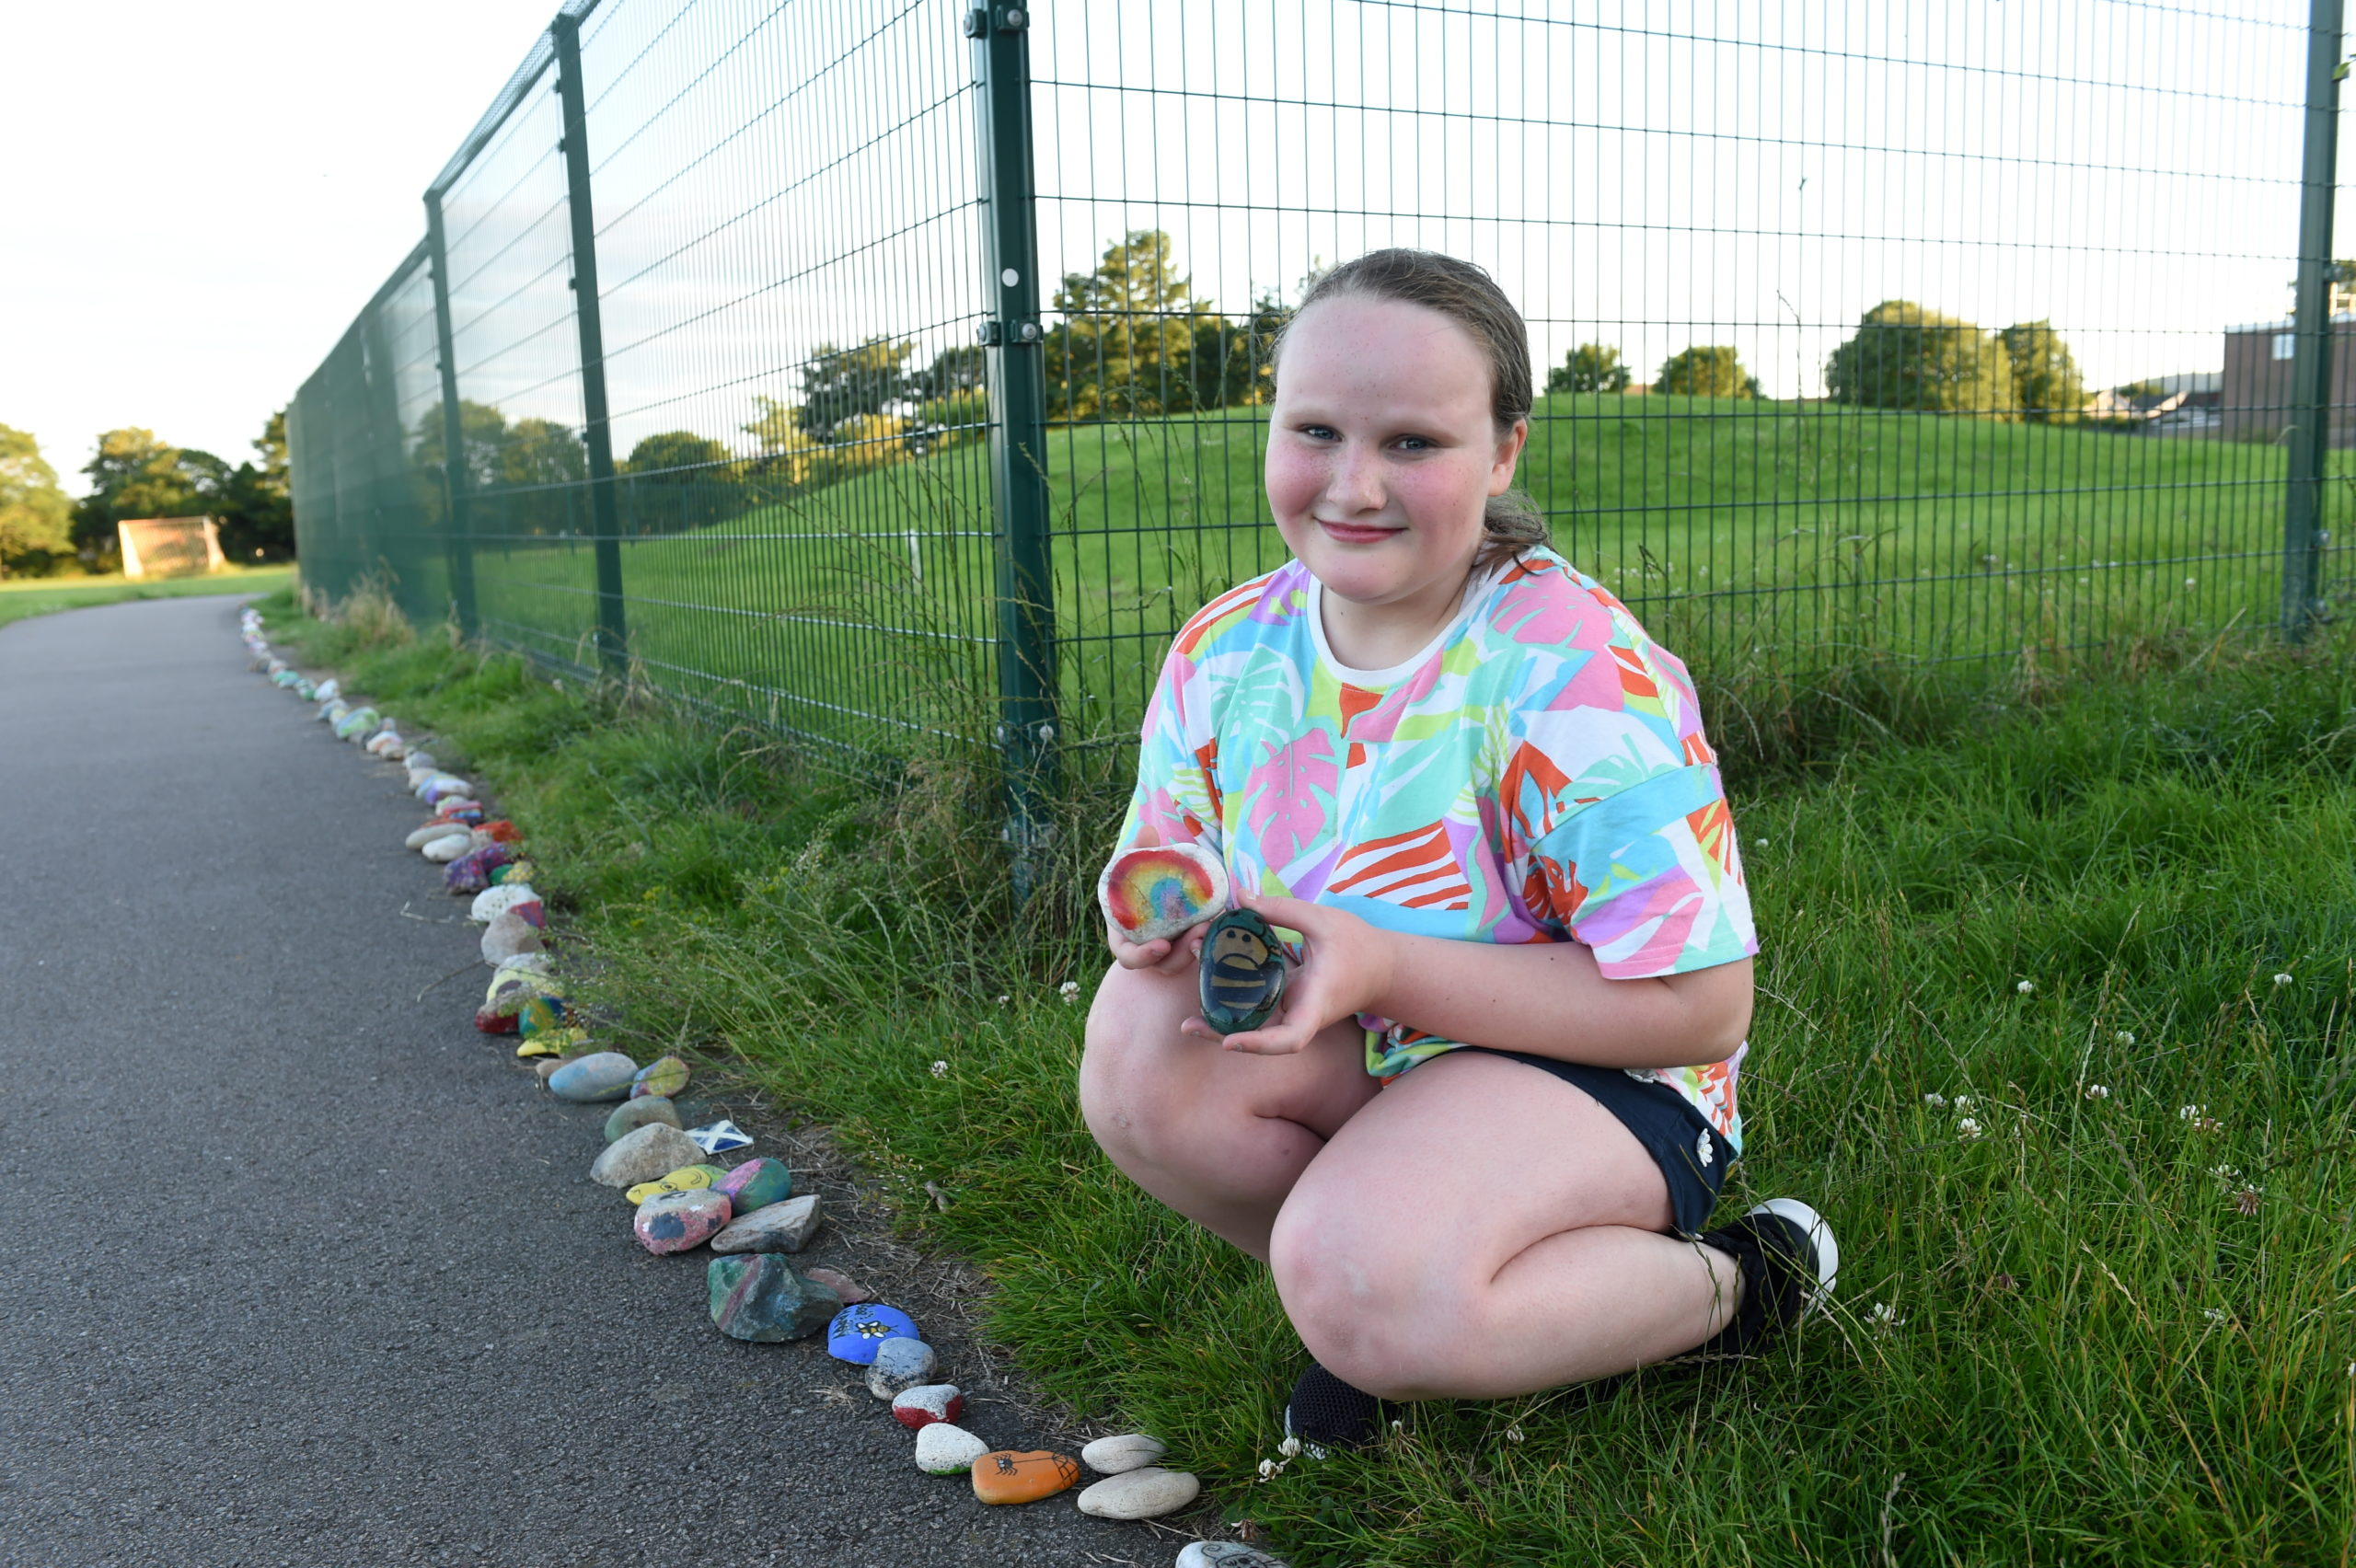 Abbie Colville, 10, adding some rocks to the Dyce Covid-19 snake